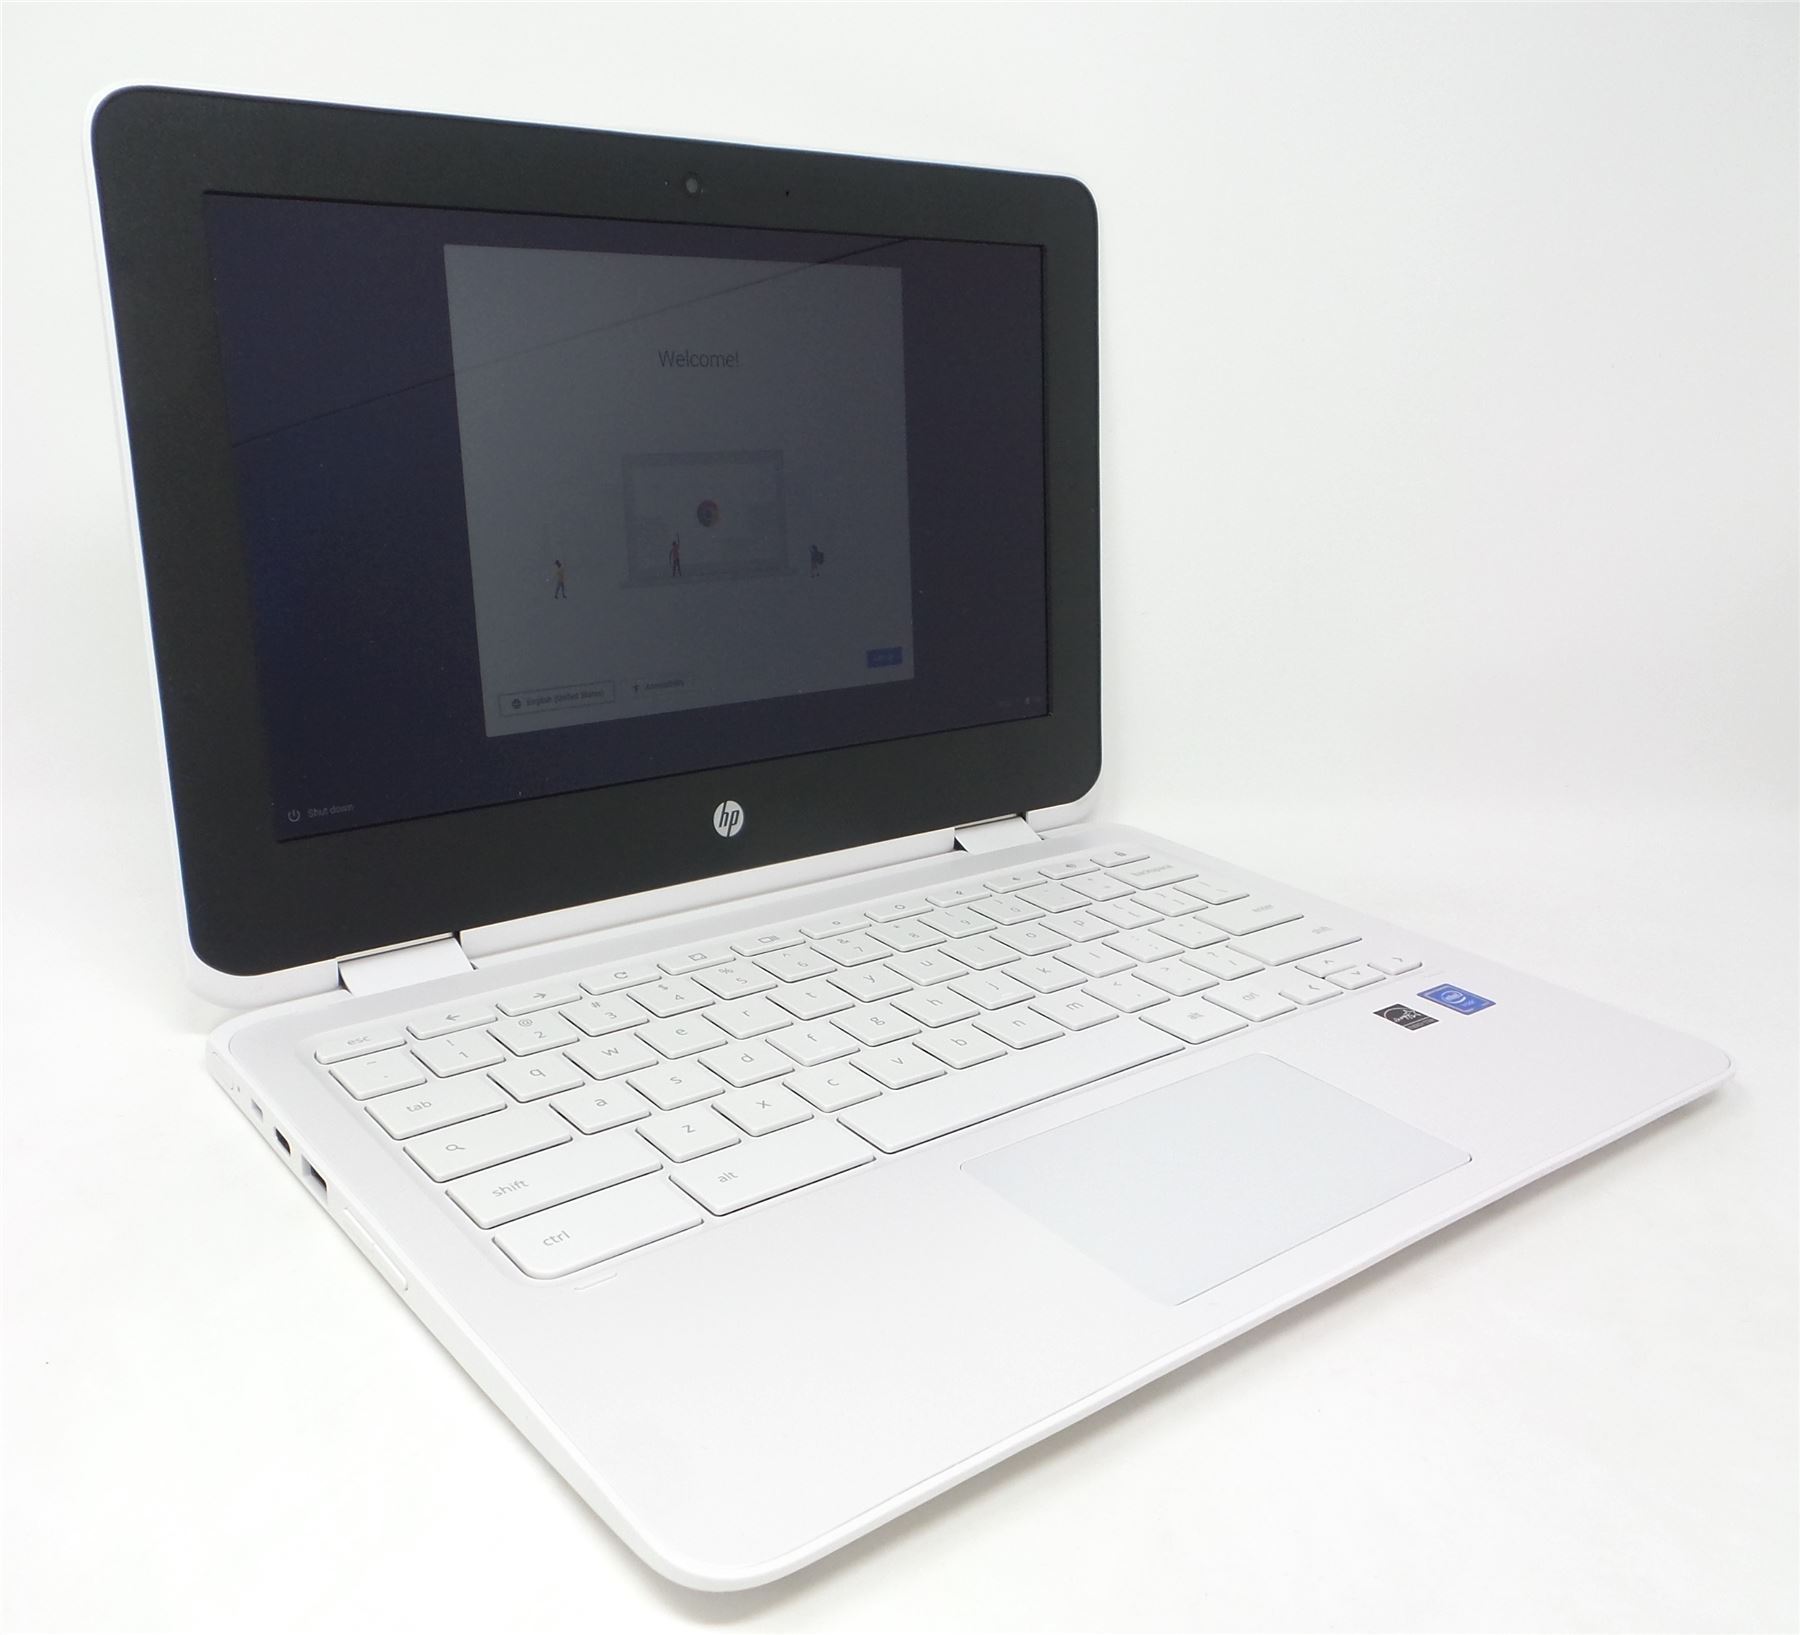 Details about HP Chromebook 2-in-1 PC 11 6